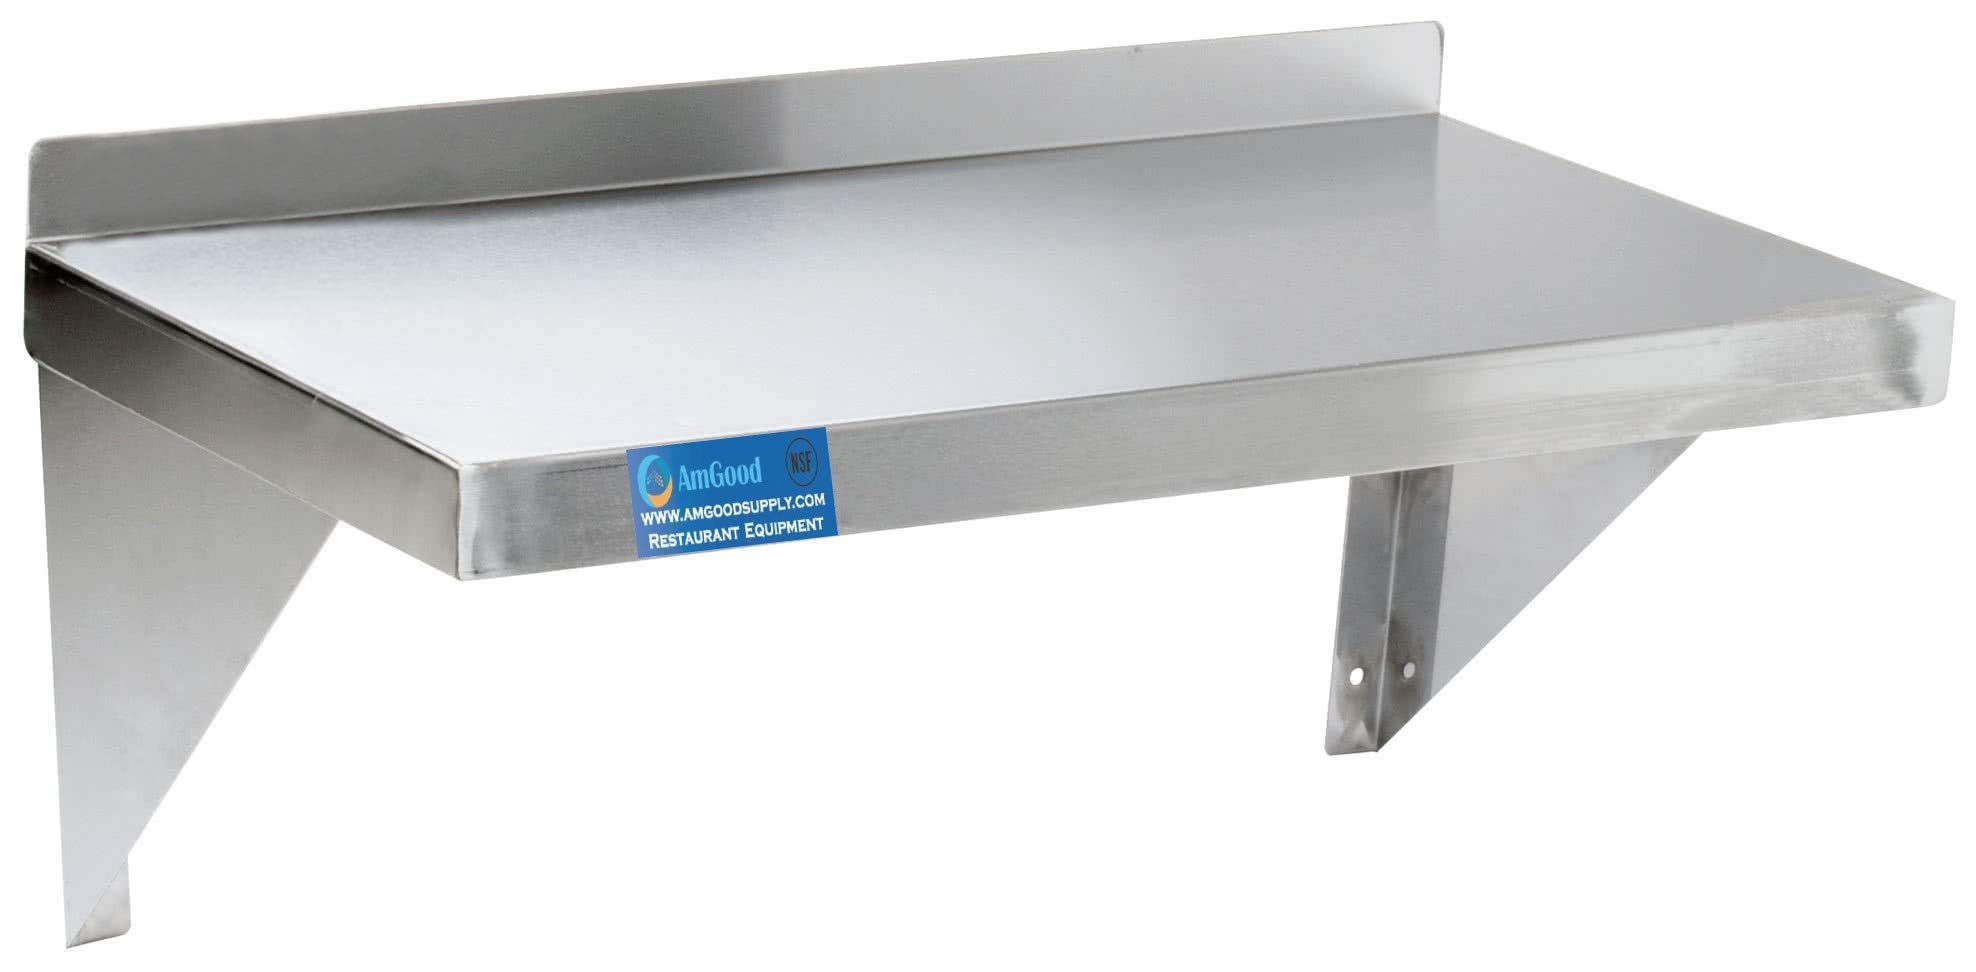 AmGood 14'' Width x 48'' Length | Stainless Steel Wall Shelf | Square Edge | Metal Shelving | Heavy Duty | Commercial Grade | Wall Mount | NSF Certified by AmGood